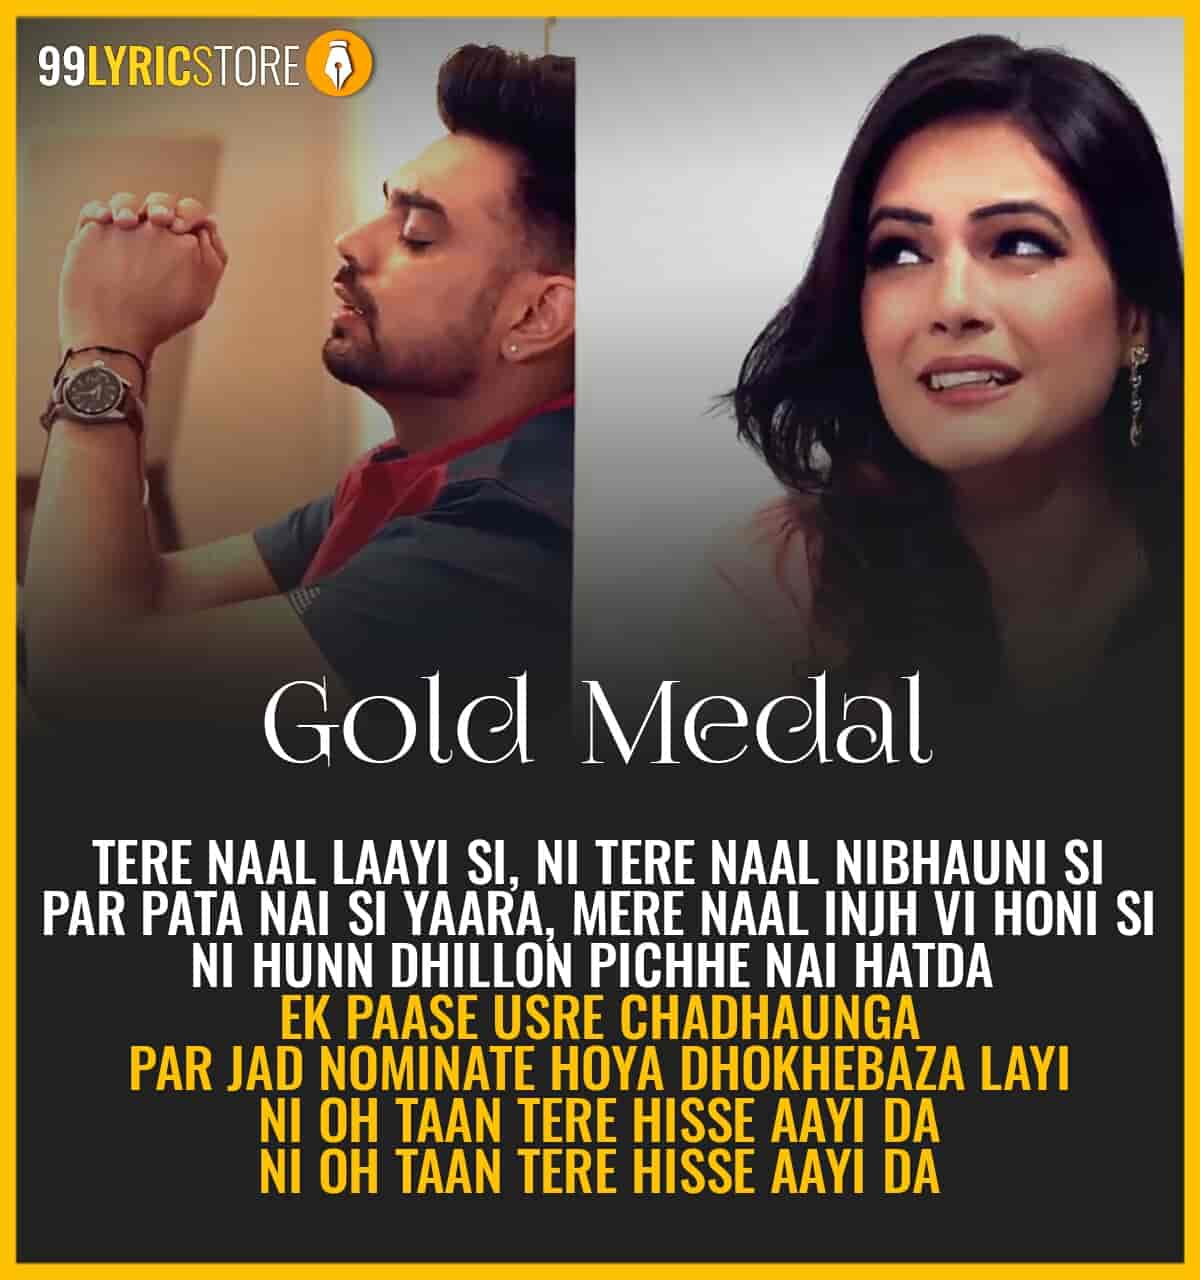 Gold Medal Punjabi Song Sung by Gaggi Dhillon and Jaisveen